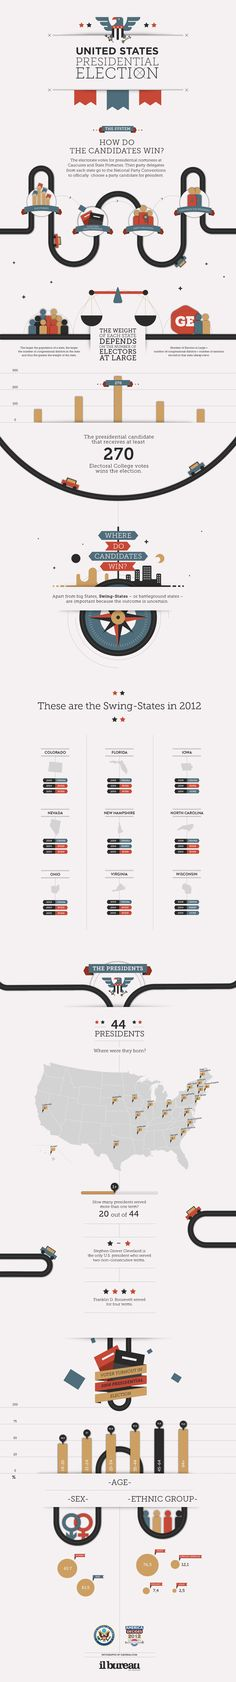 il Bureau - Presidential Election - infographic more on http://html5themes.org